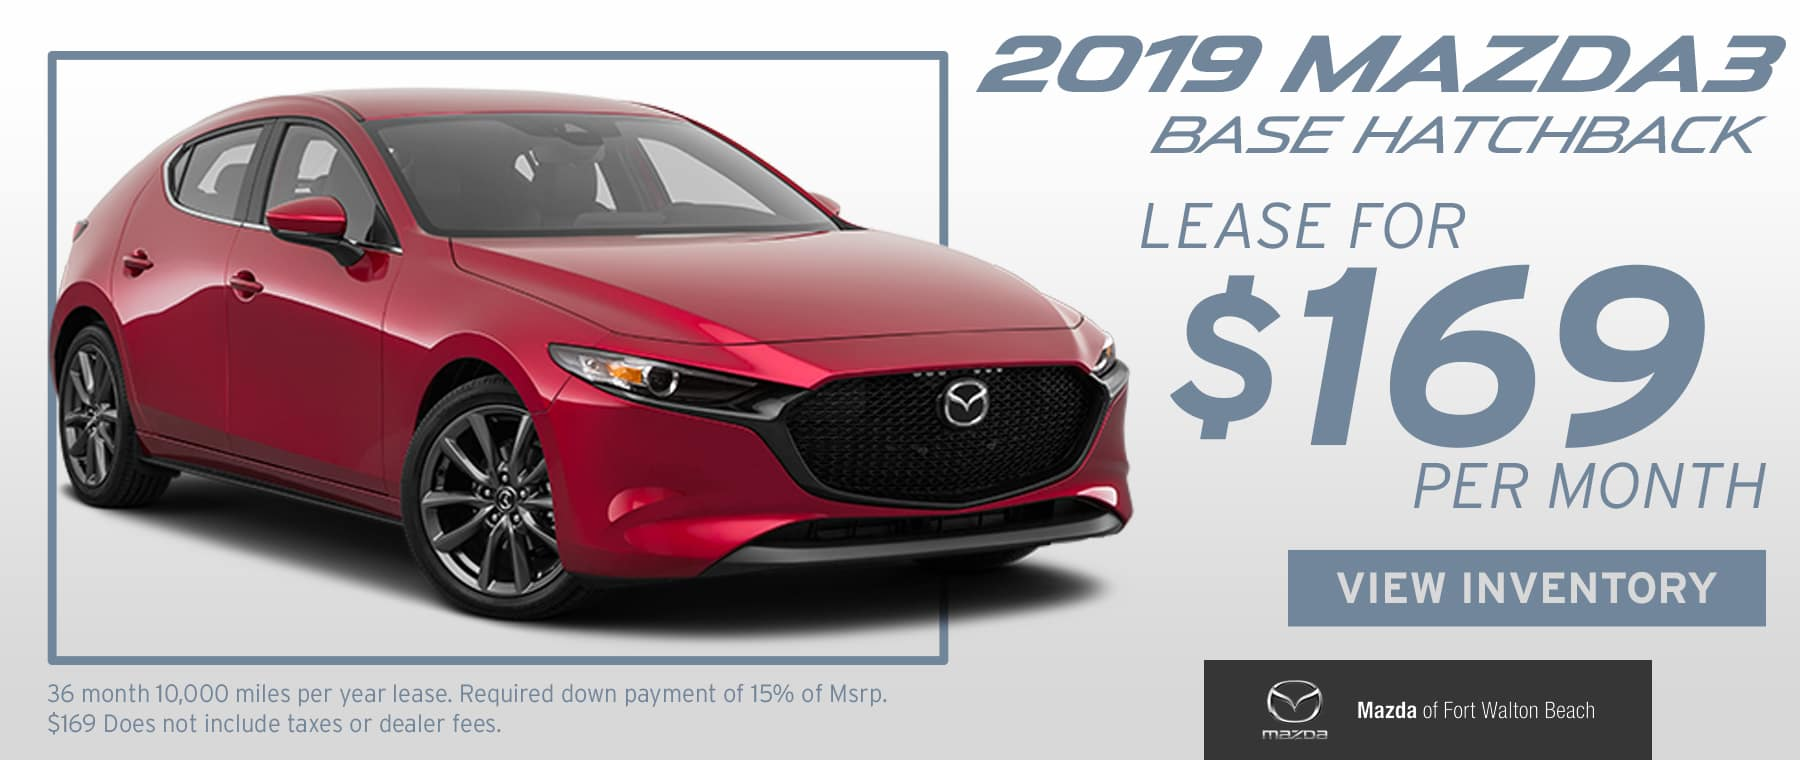 2019 Mazda3 Base Hatchback Offer